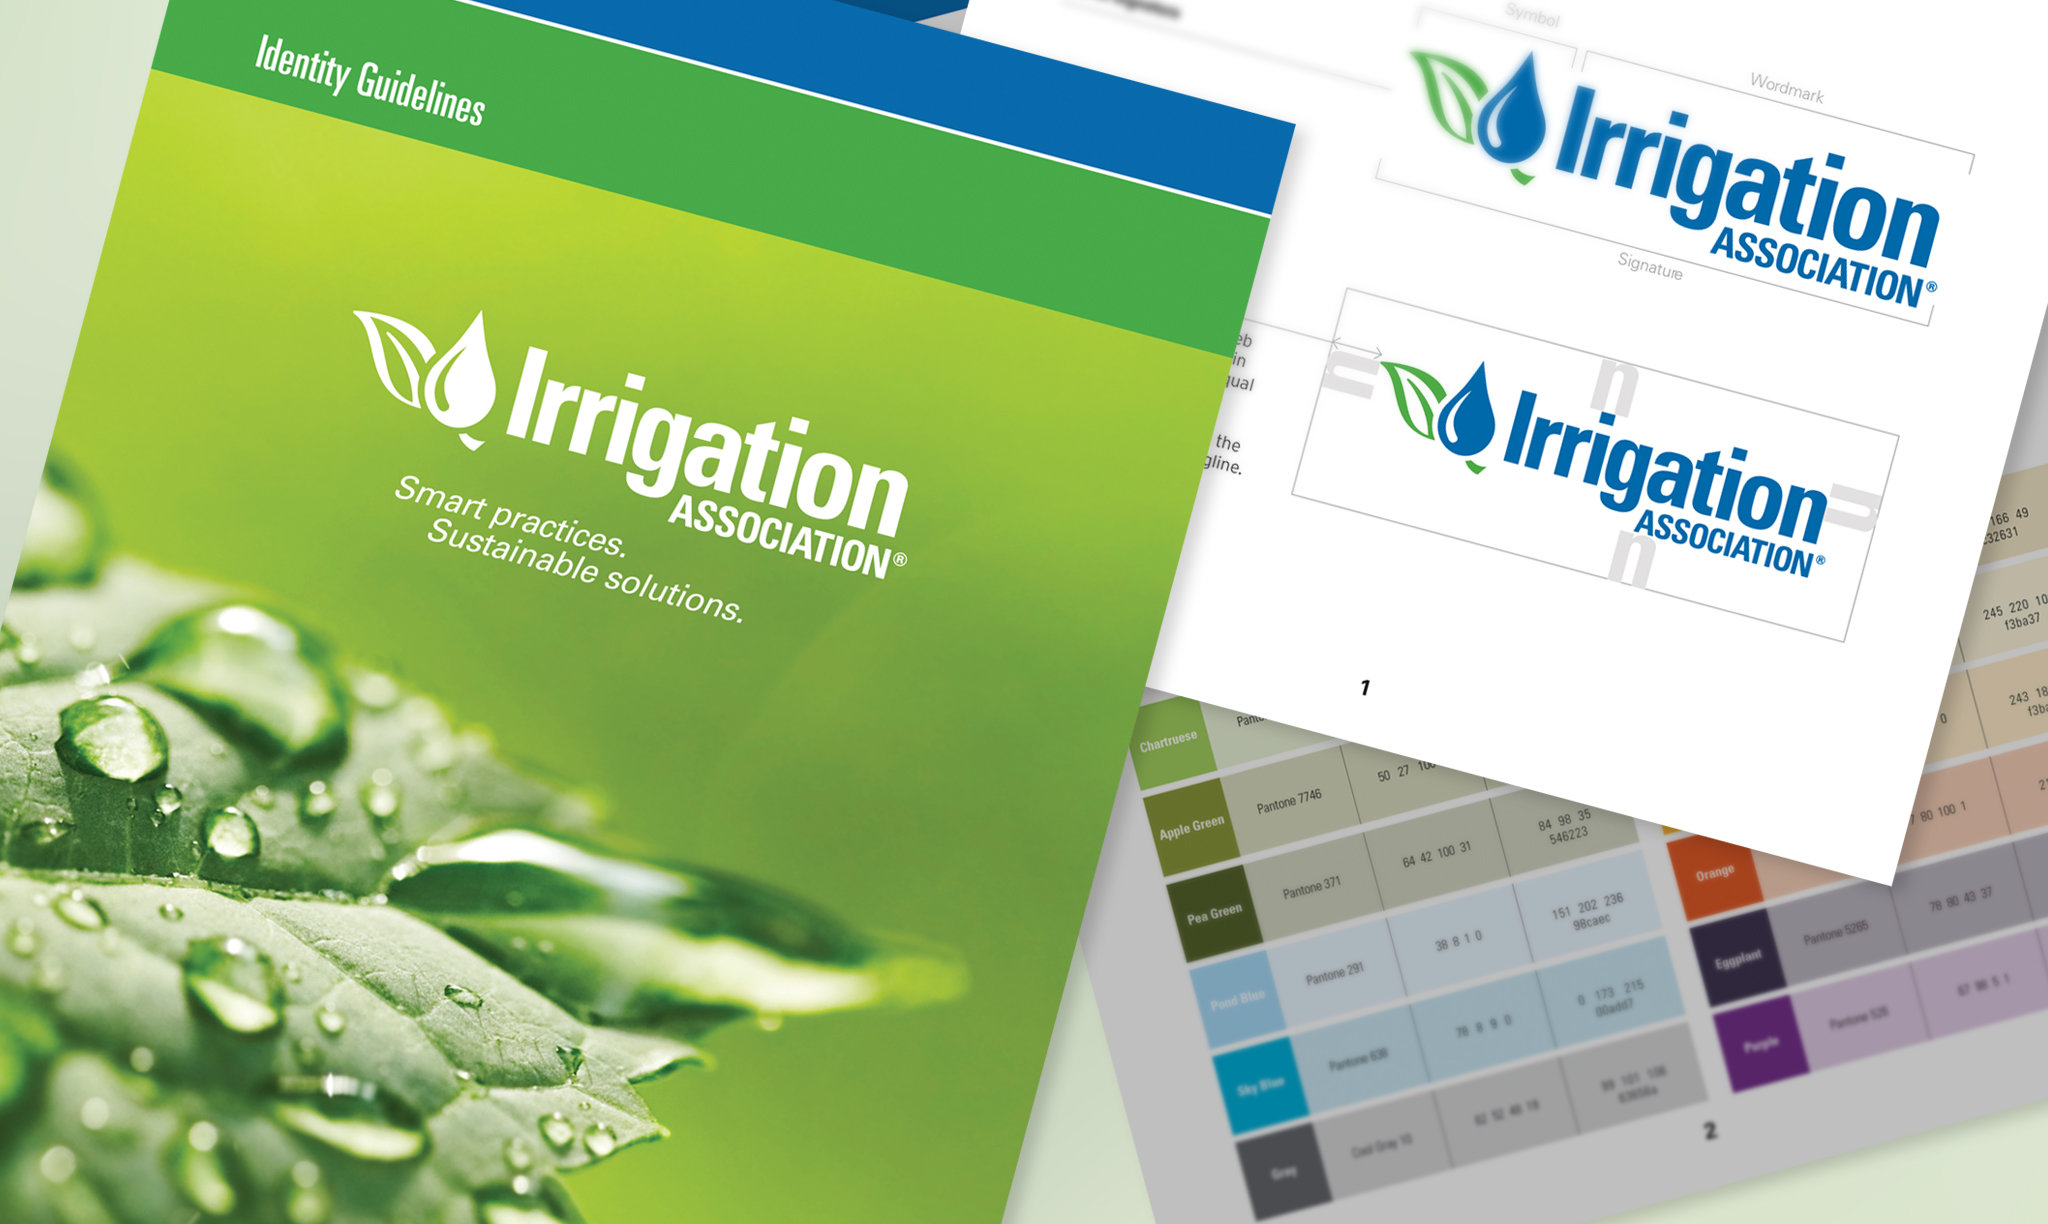 Irrigation Association Identity Guidelines